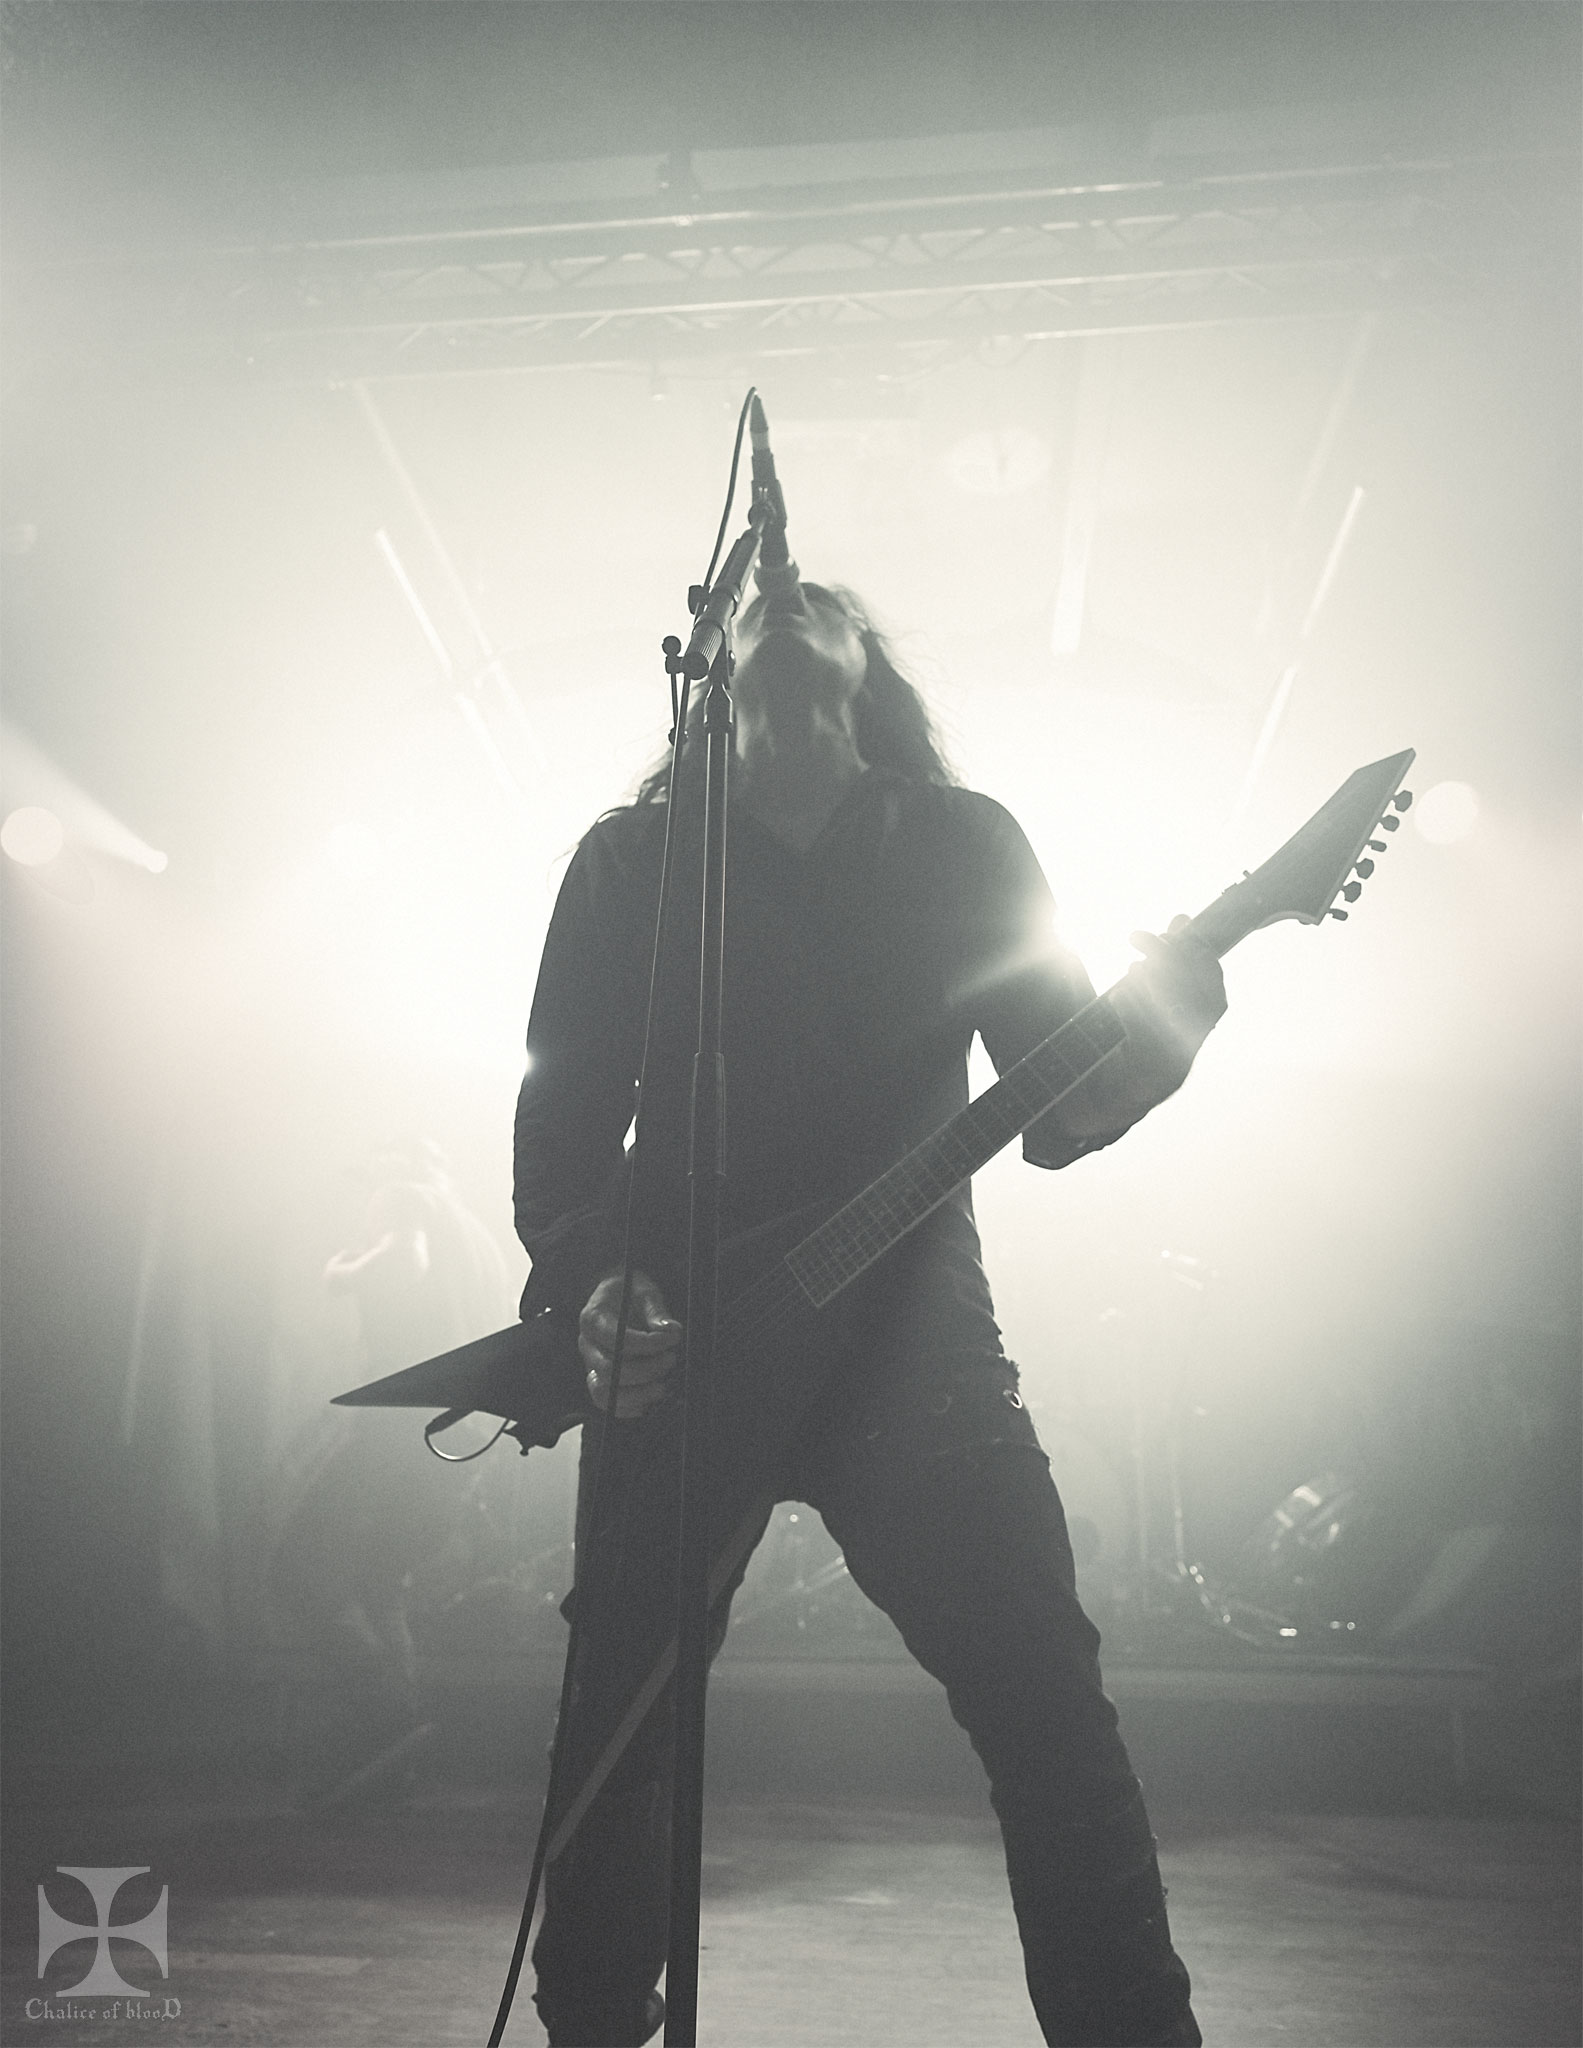 Kreator-0227-Exposure-watermarked.jpg